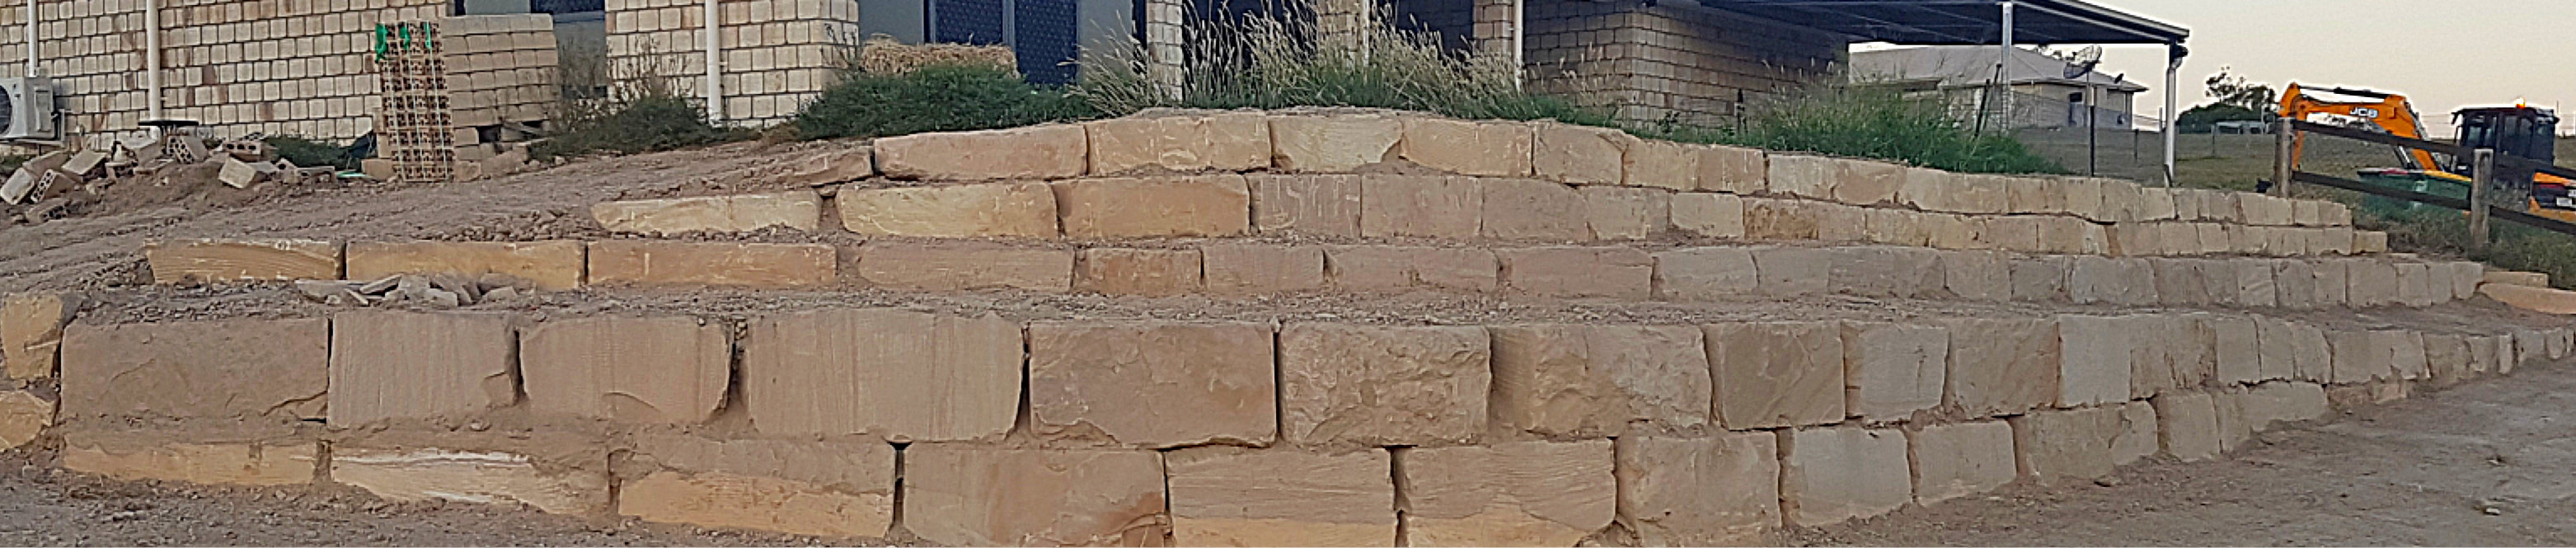 Frequently Asked Questions - South Brisbane Sandstone Rock Walls